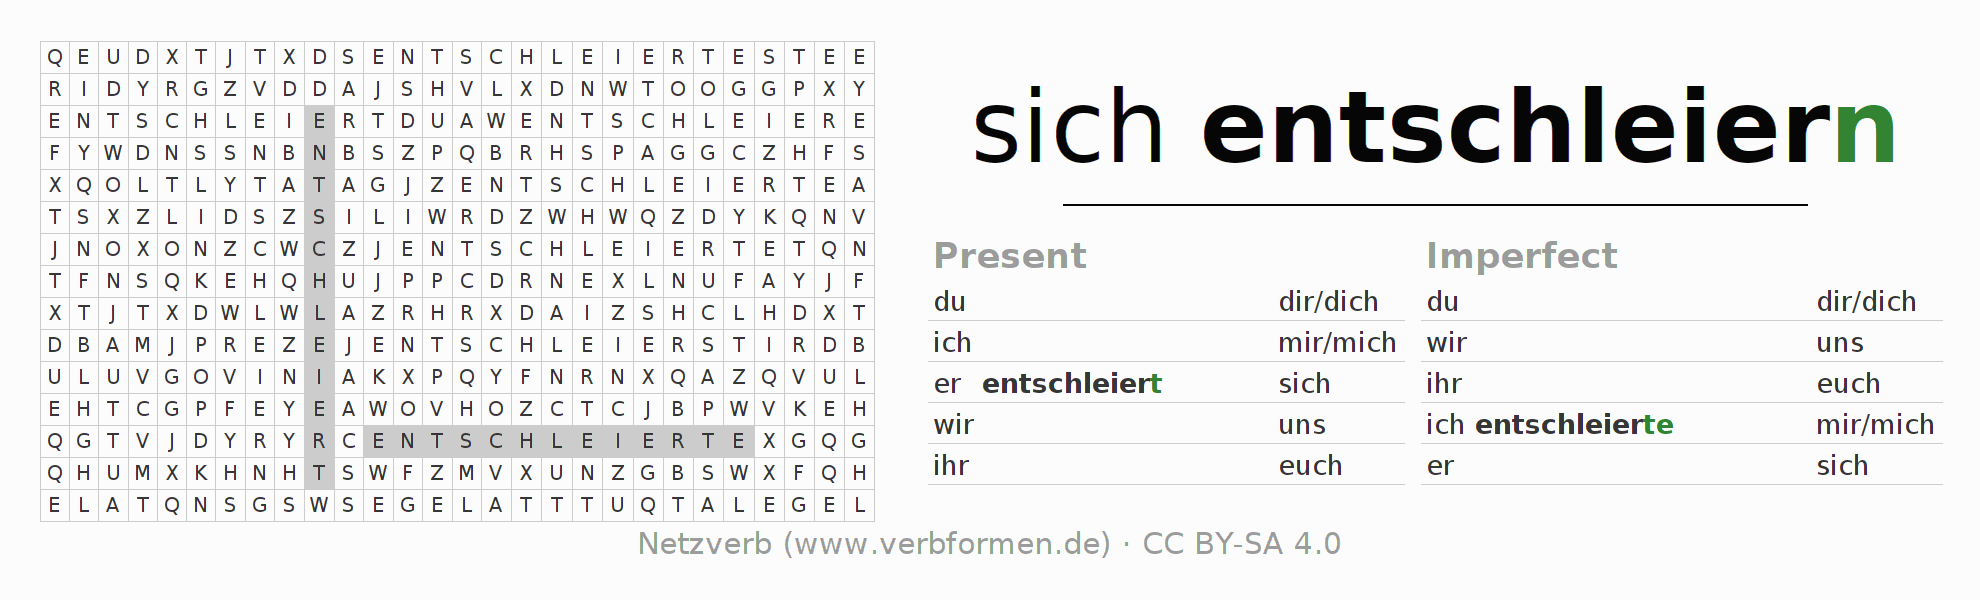 Word search puzzle for the conjugation of the verb sich entschleiern